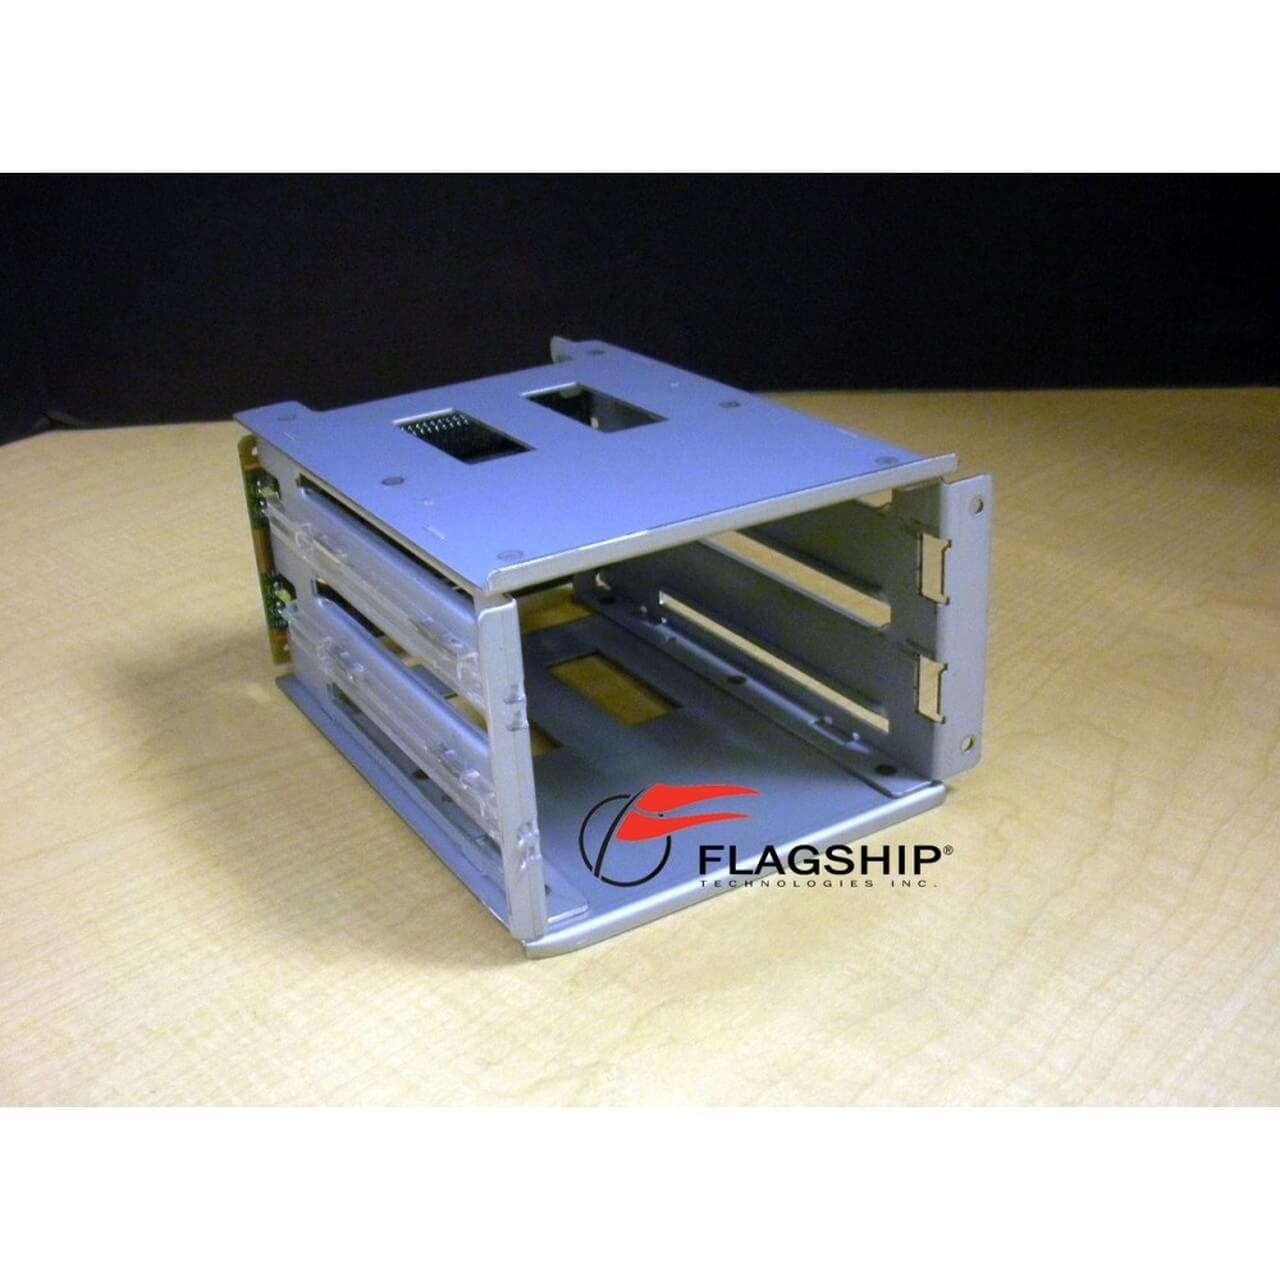 Buy & save on refurbished computer server Fujitsu backplanes from your trusted partners at Flagship Technologies.